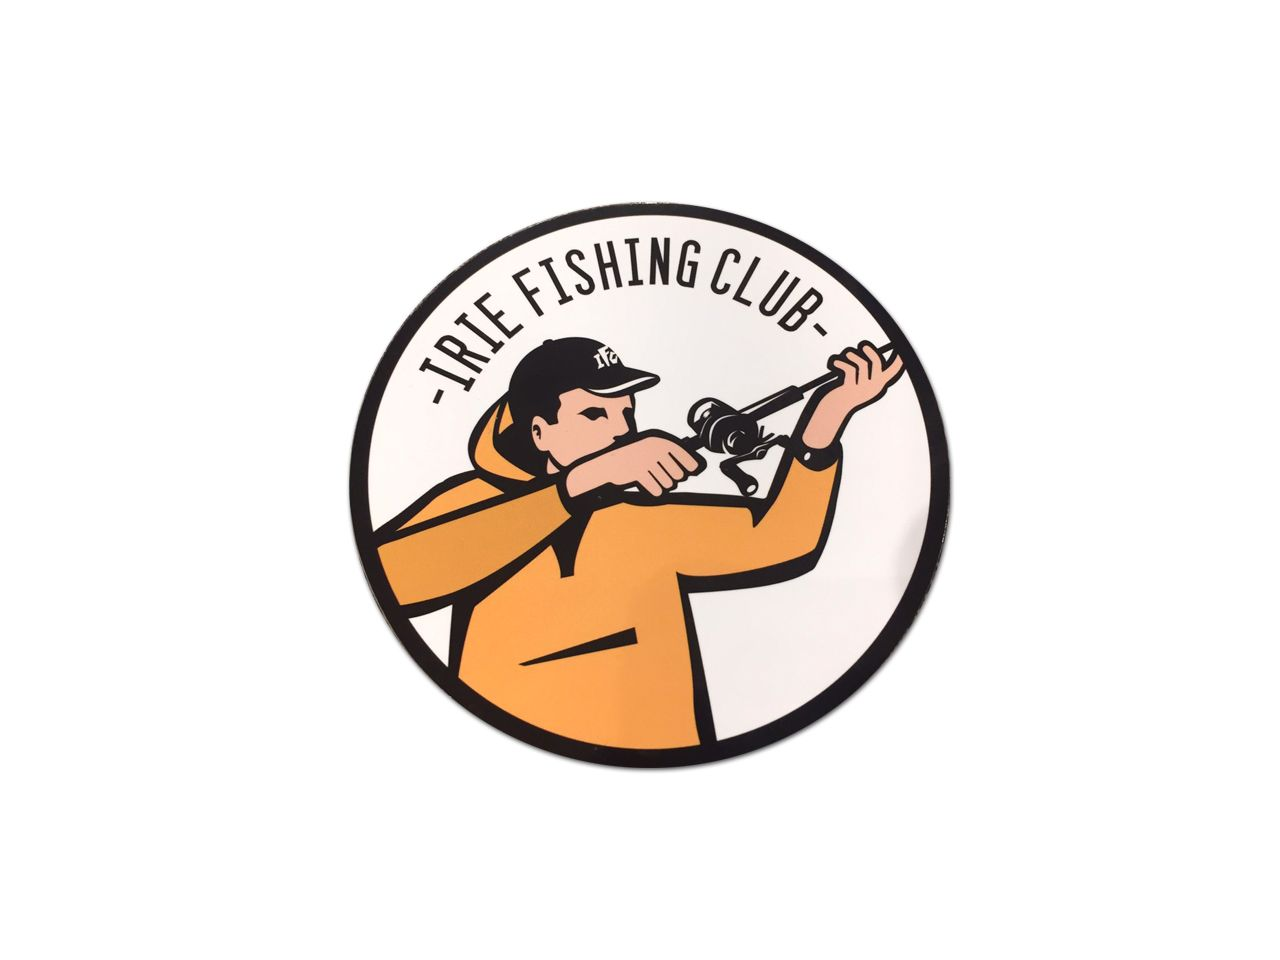 【再入荷】 I.F.C WATERPROOF STICKER【SNIPERBOY】 -IRIE FISHING CLUB-